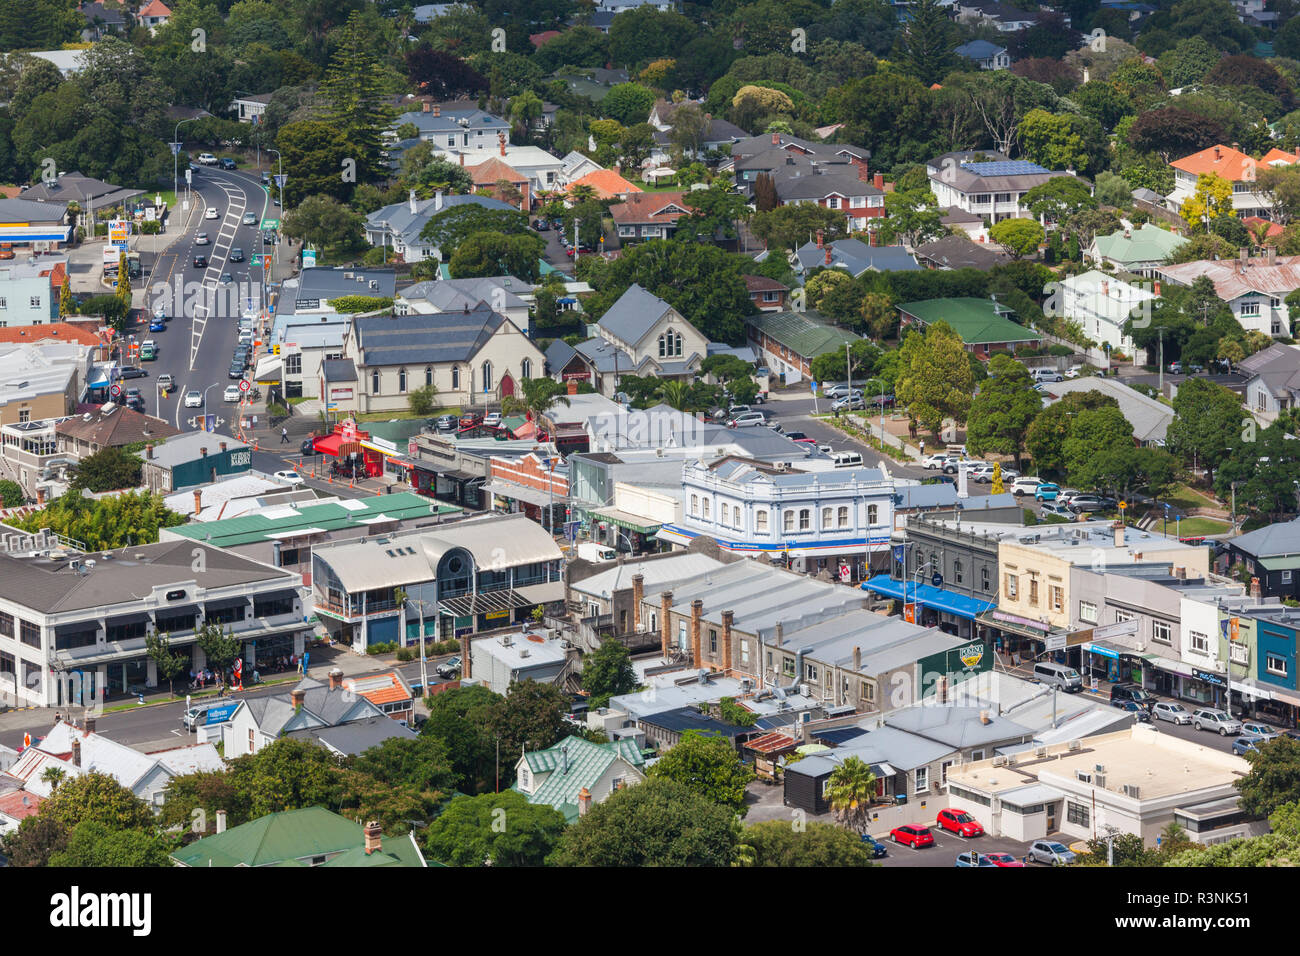 New Zealand, North Island, Auckland. Elevated view of Mt. Eden Road - Stock Image